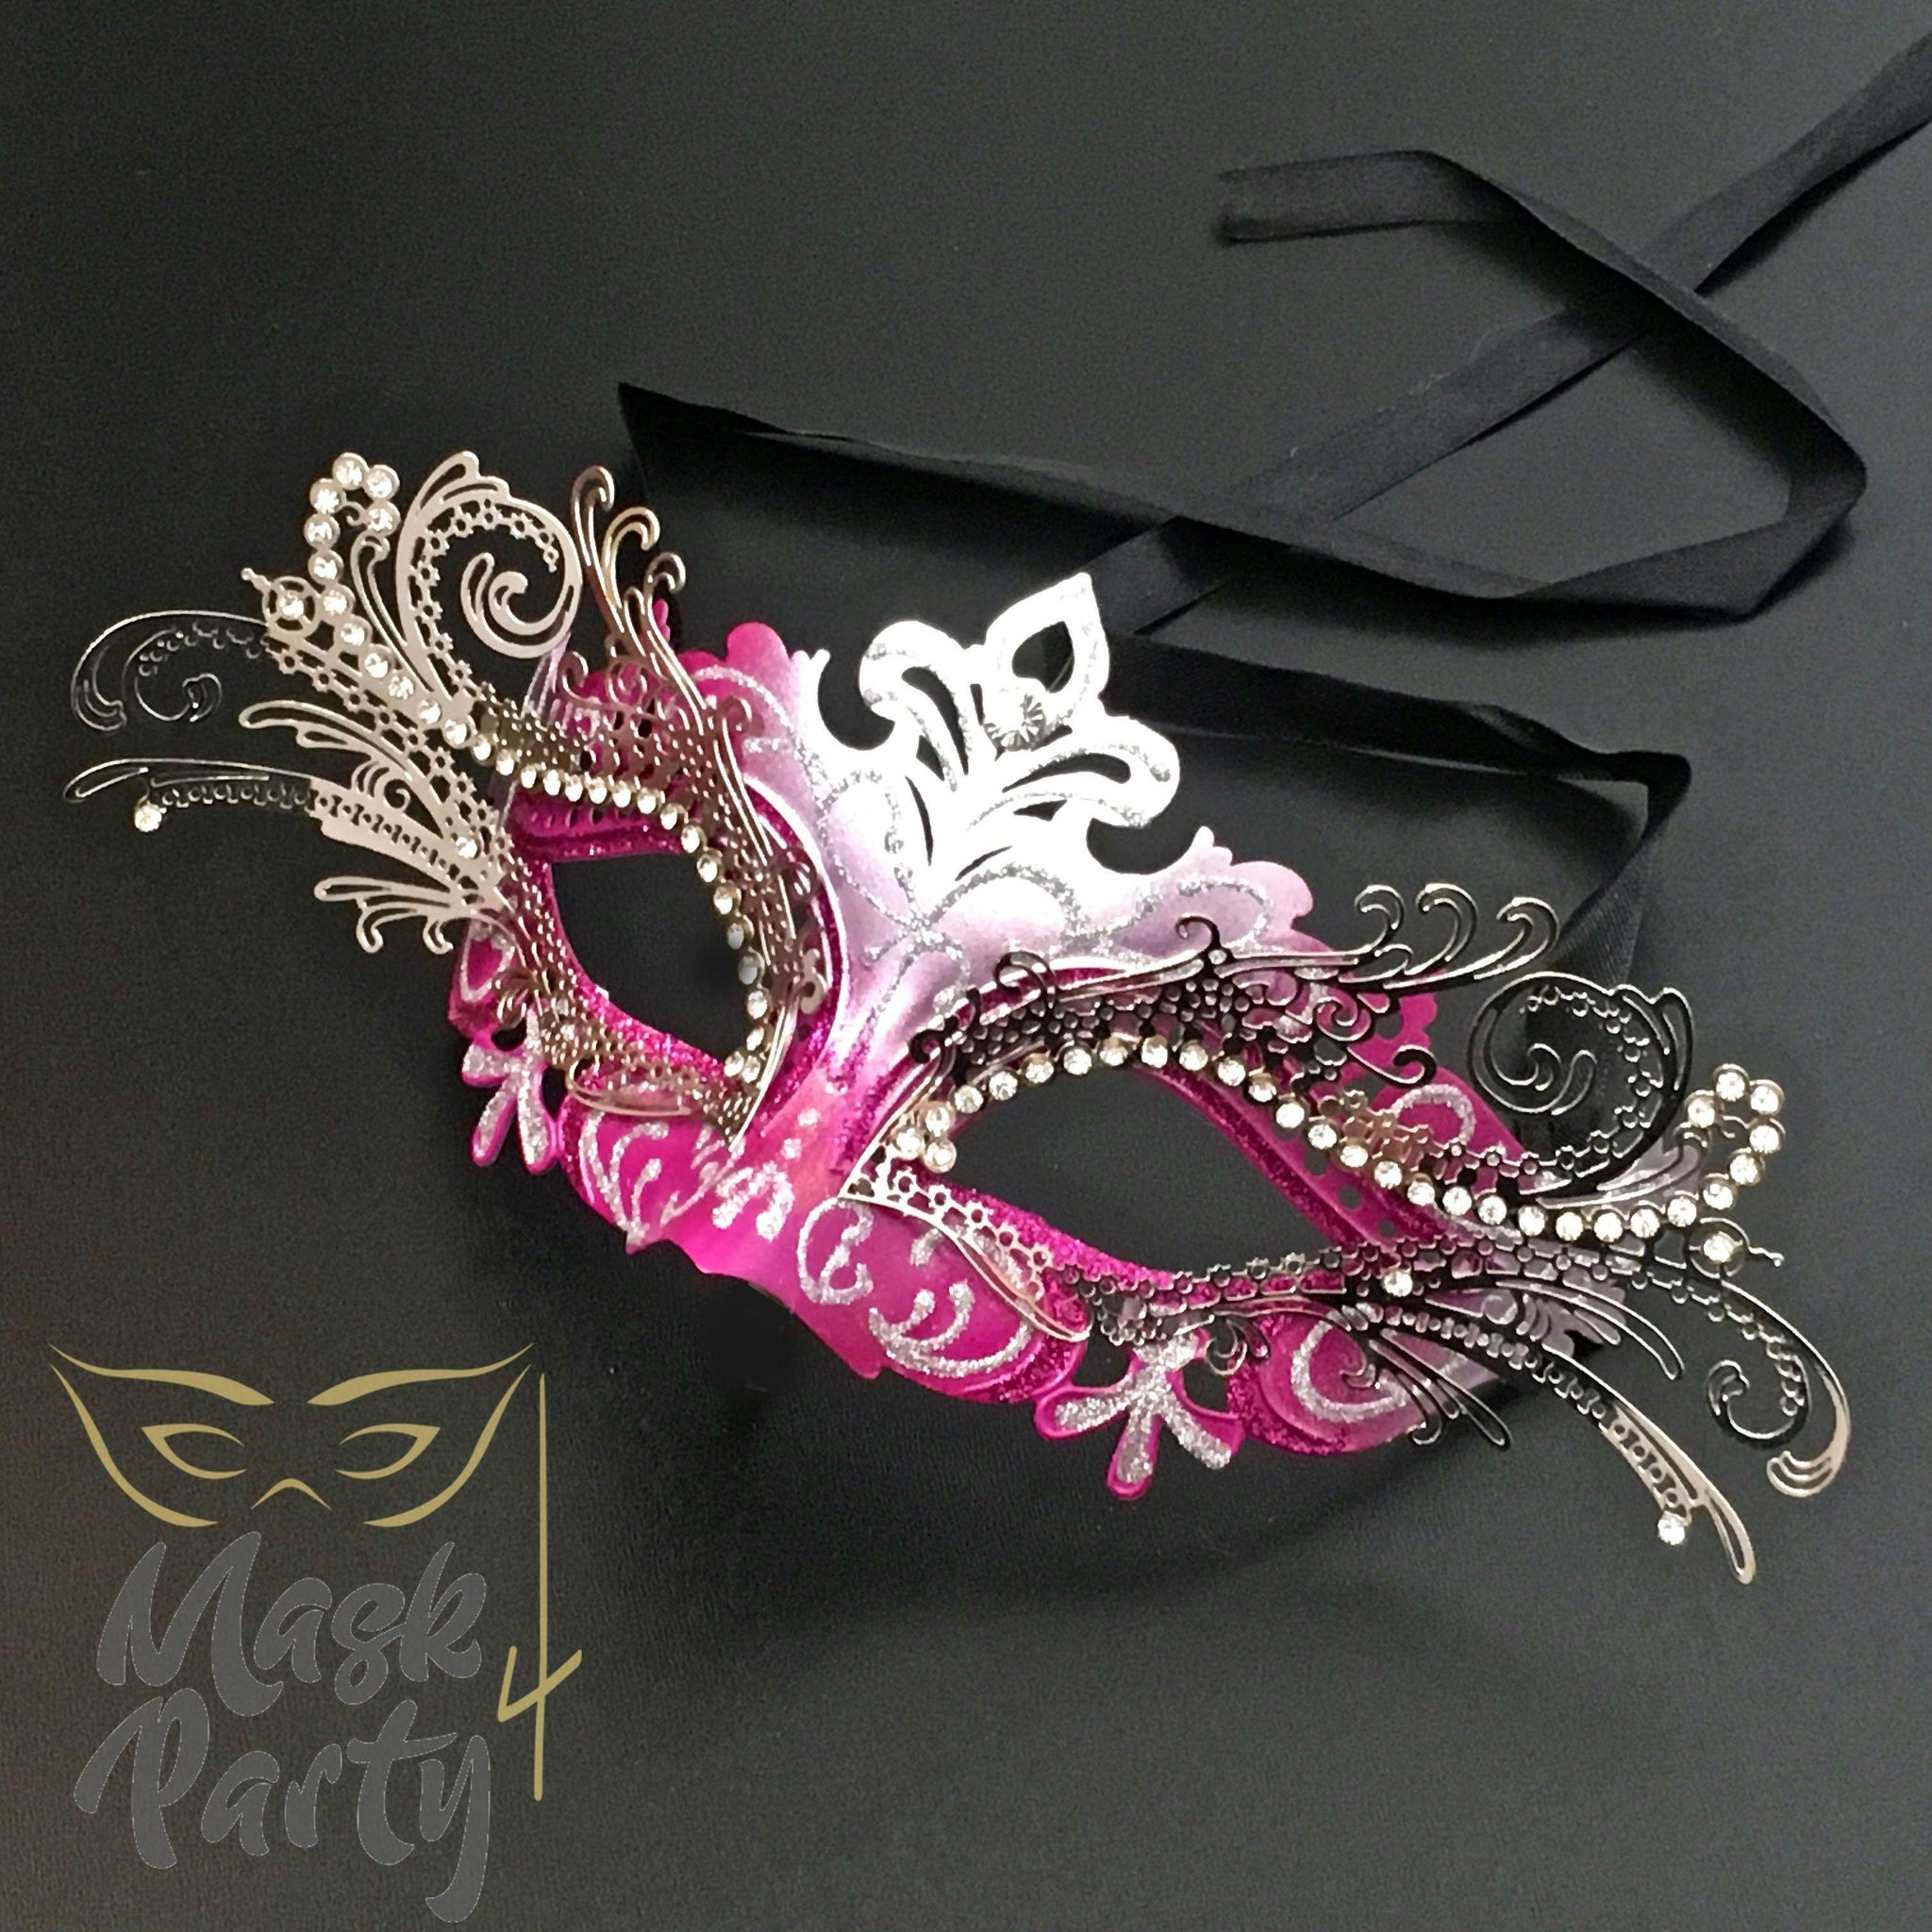 Masquerade Mask - Venetian Luxury Metal Eye - Hot Pink - Mask4Party